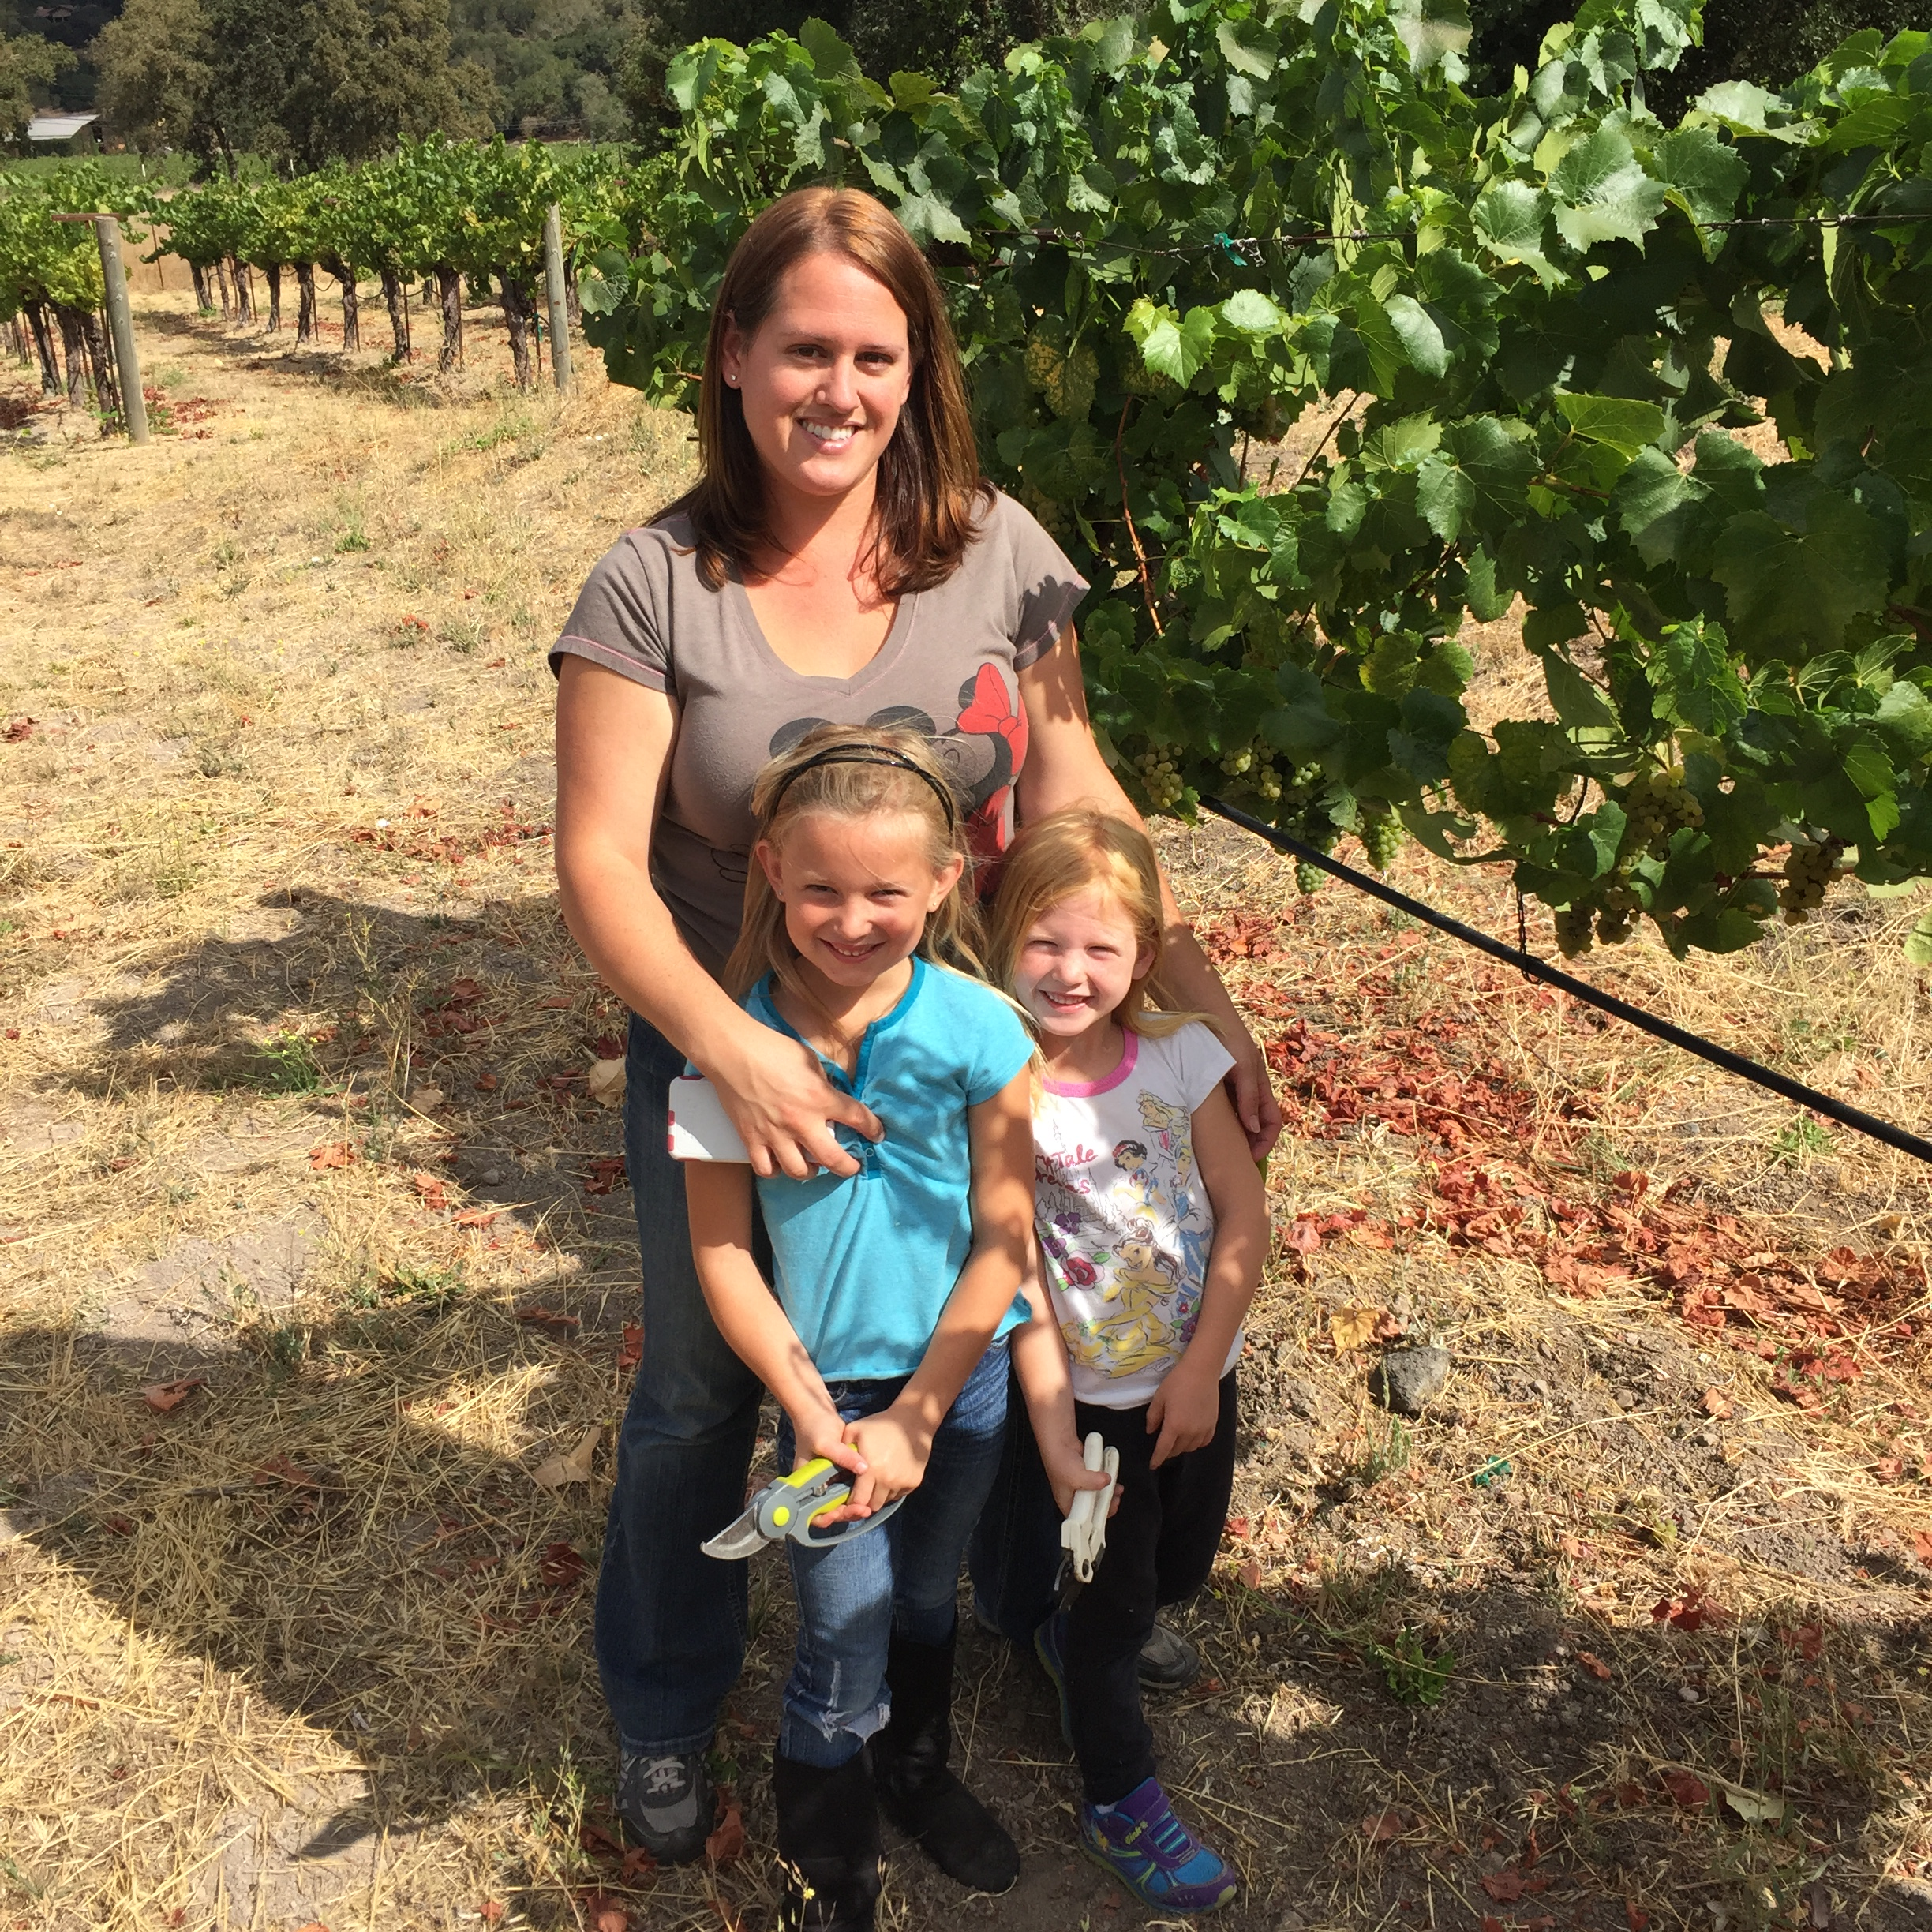 Mom and Girls in Vineyard